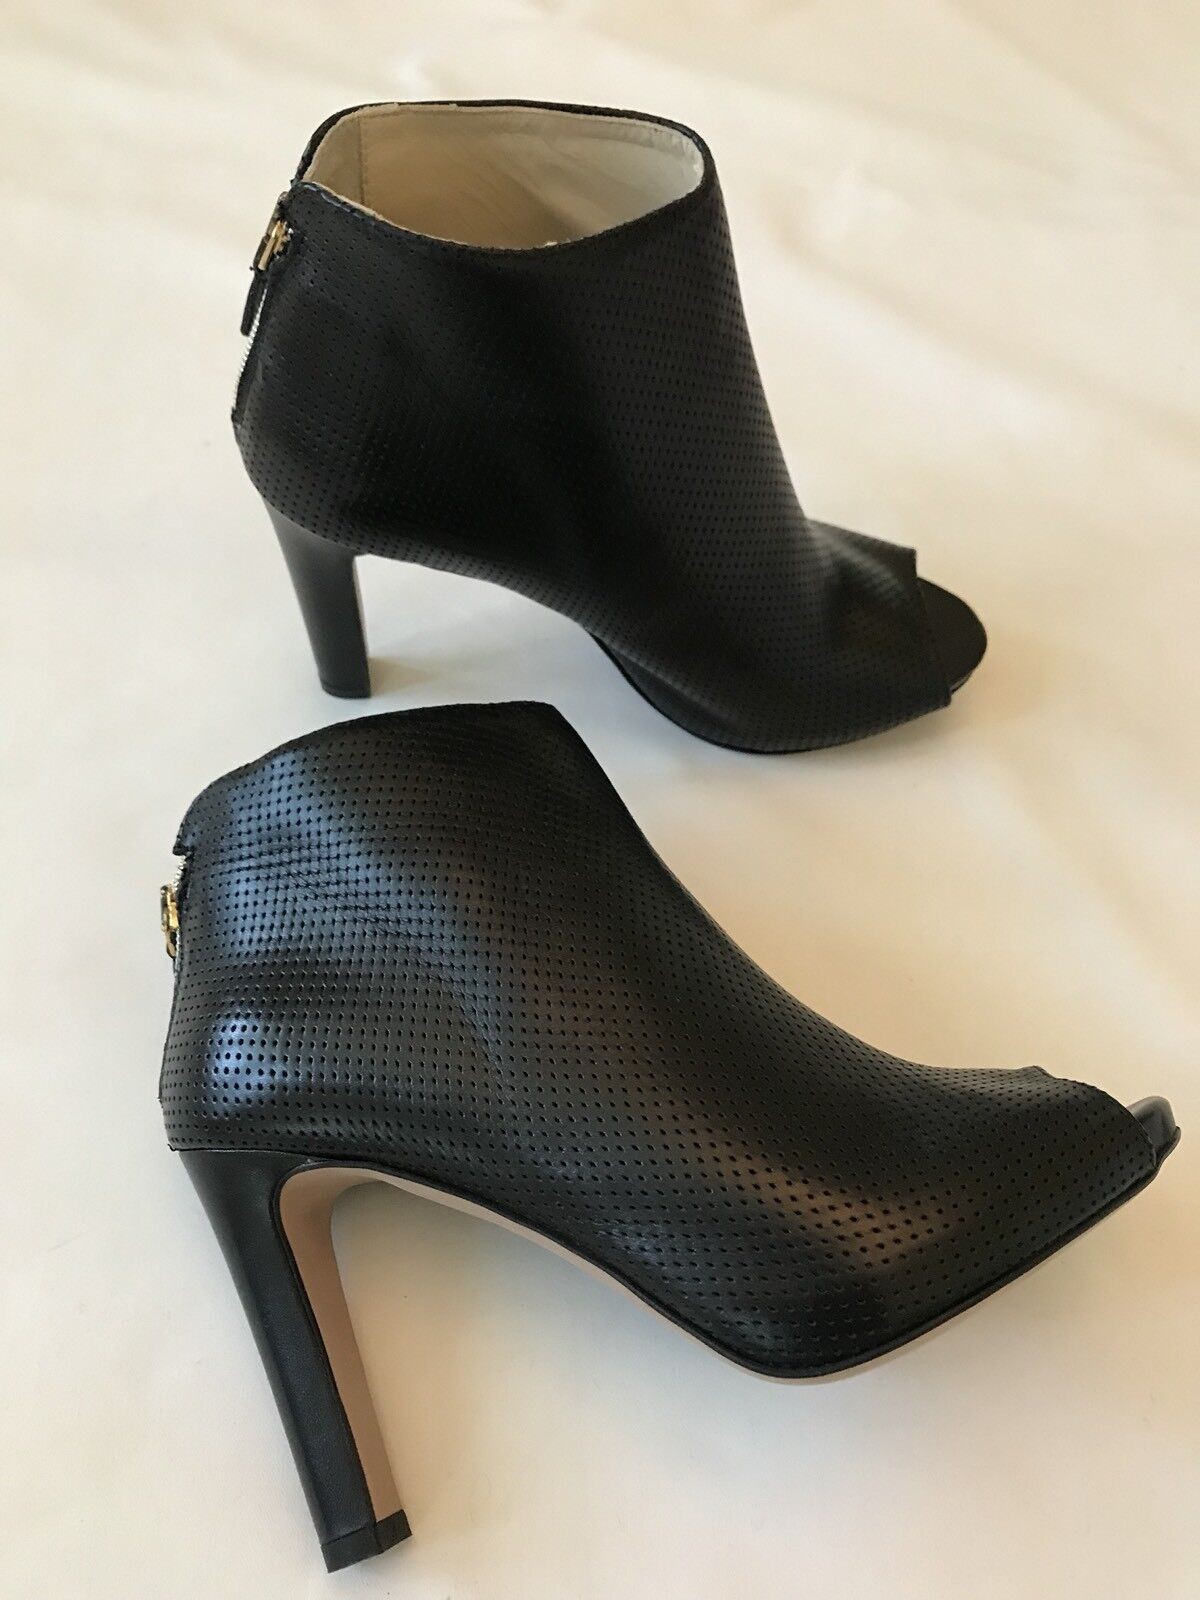 LA PERLA LEATHER OPEN TOES BOOTIES shoes SZ 40 (US 9.5-10) BLACK Made In